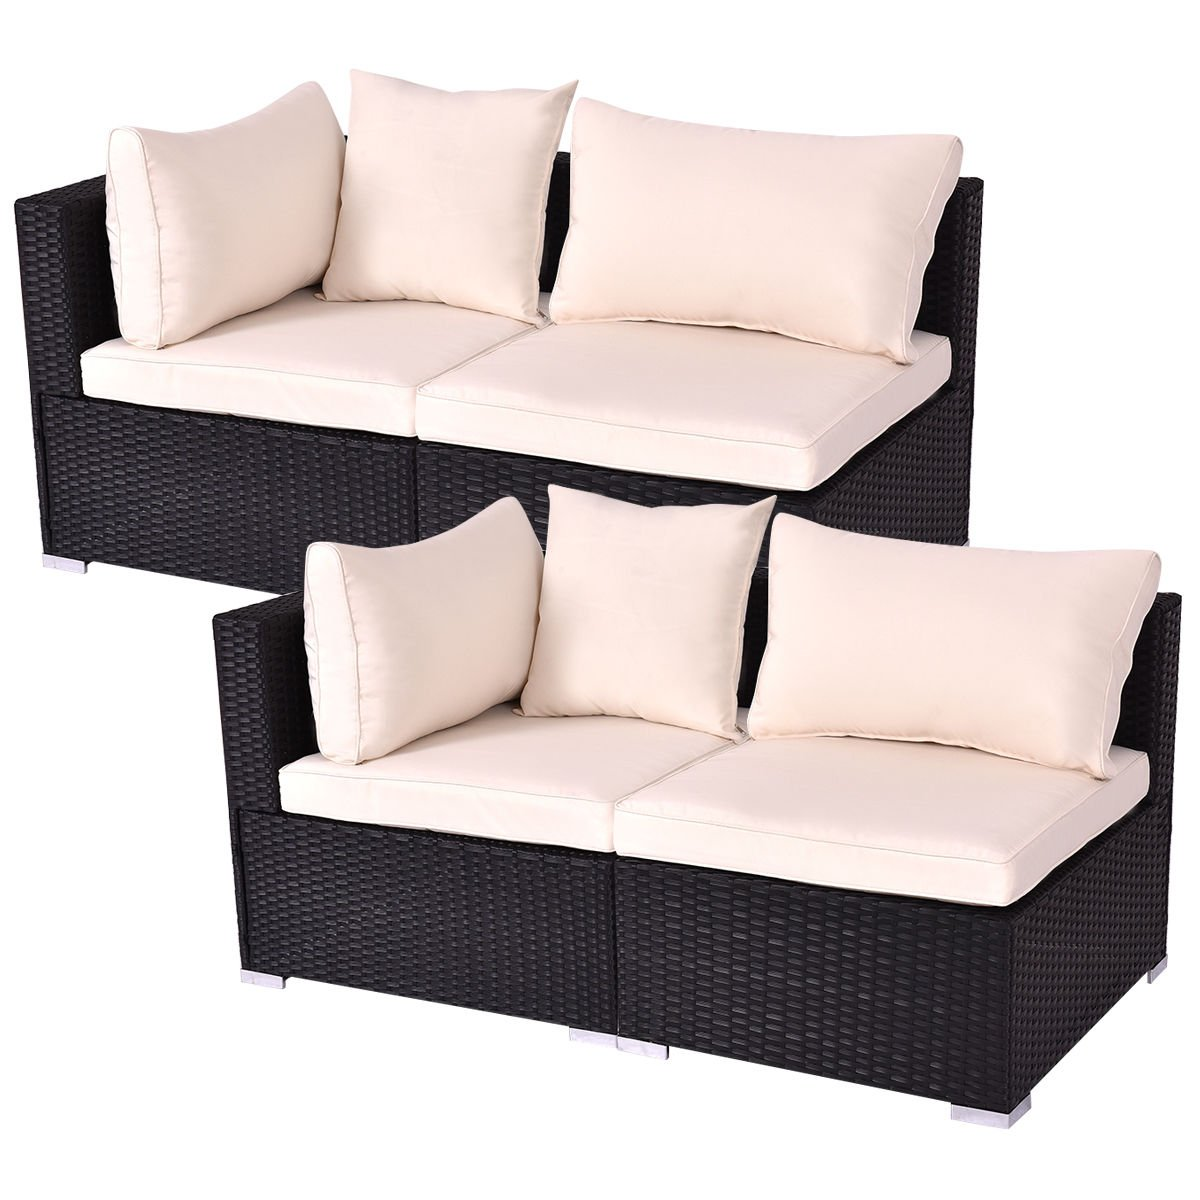 Tangkula Outdoor Wicker Furniture Set Infinitely Combination Cushion Wicker 2 Corner Sofa 2 armless Sofa